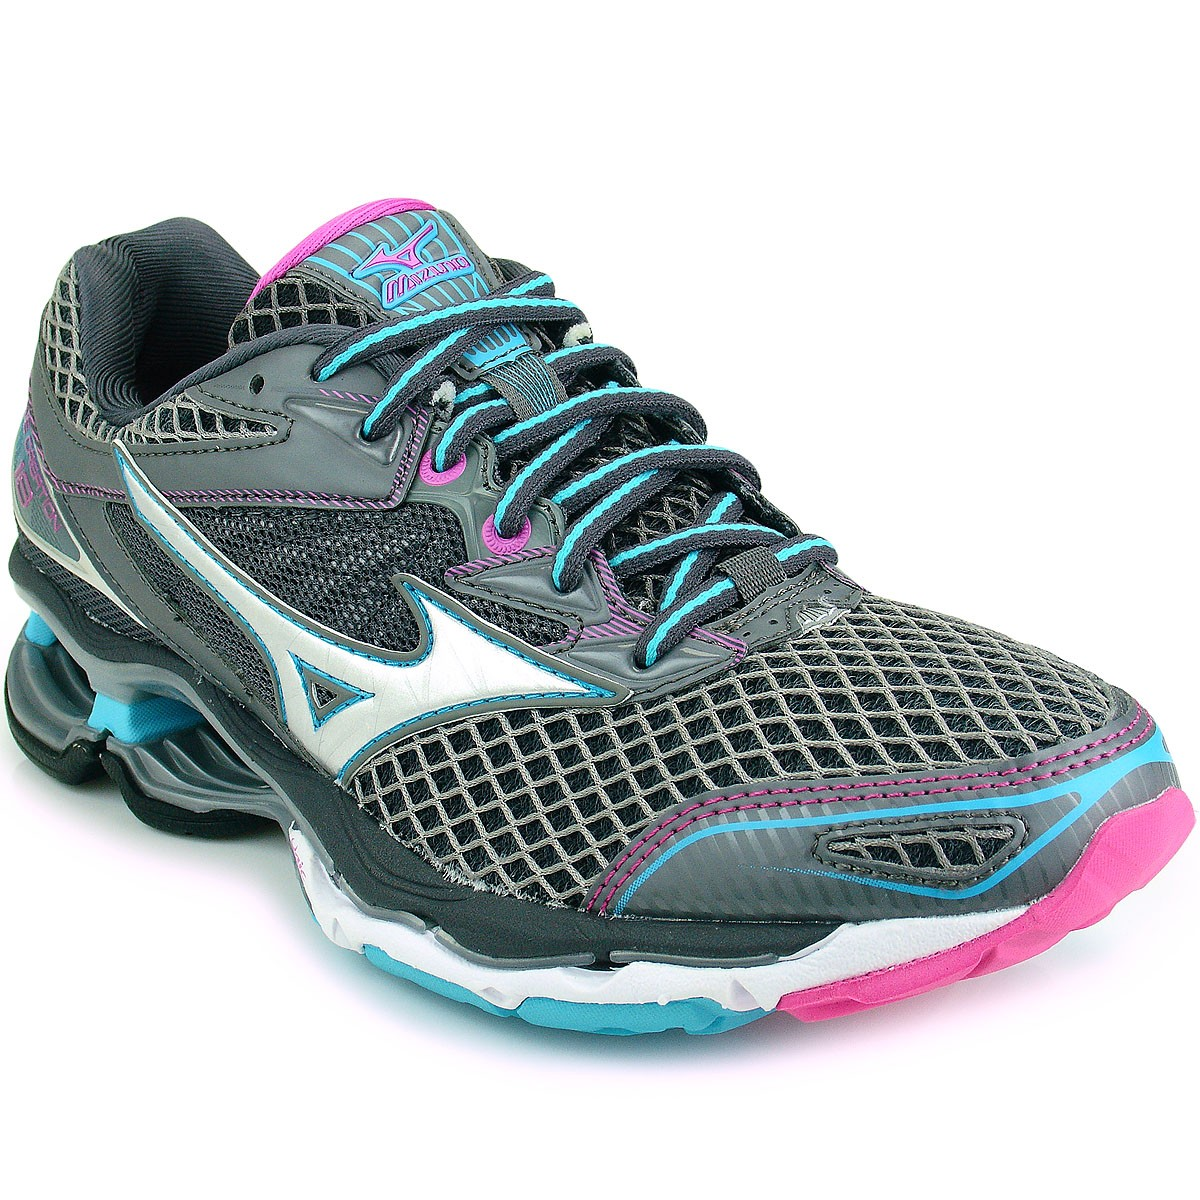 Tênis Mizuno Wave Creation 18 W 4136571 a0b66aceea6a6